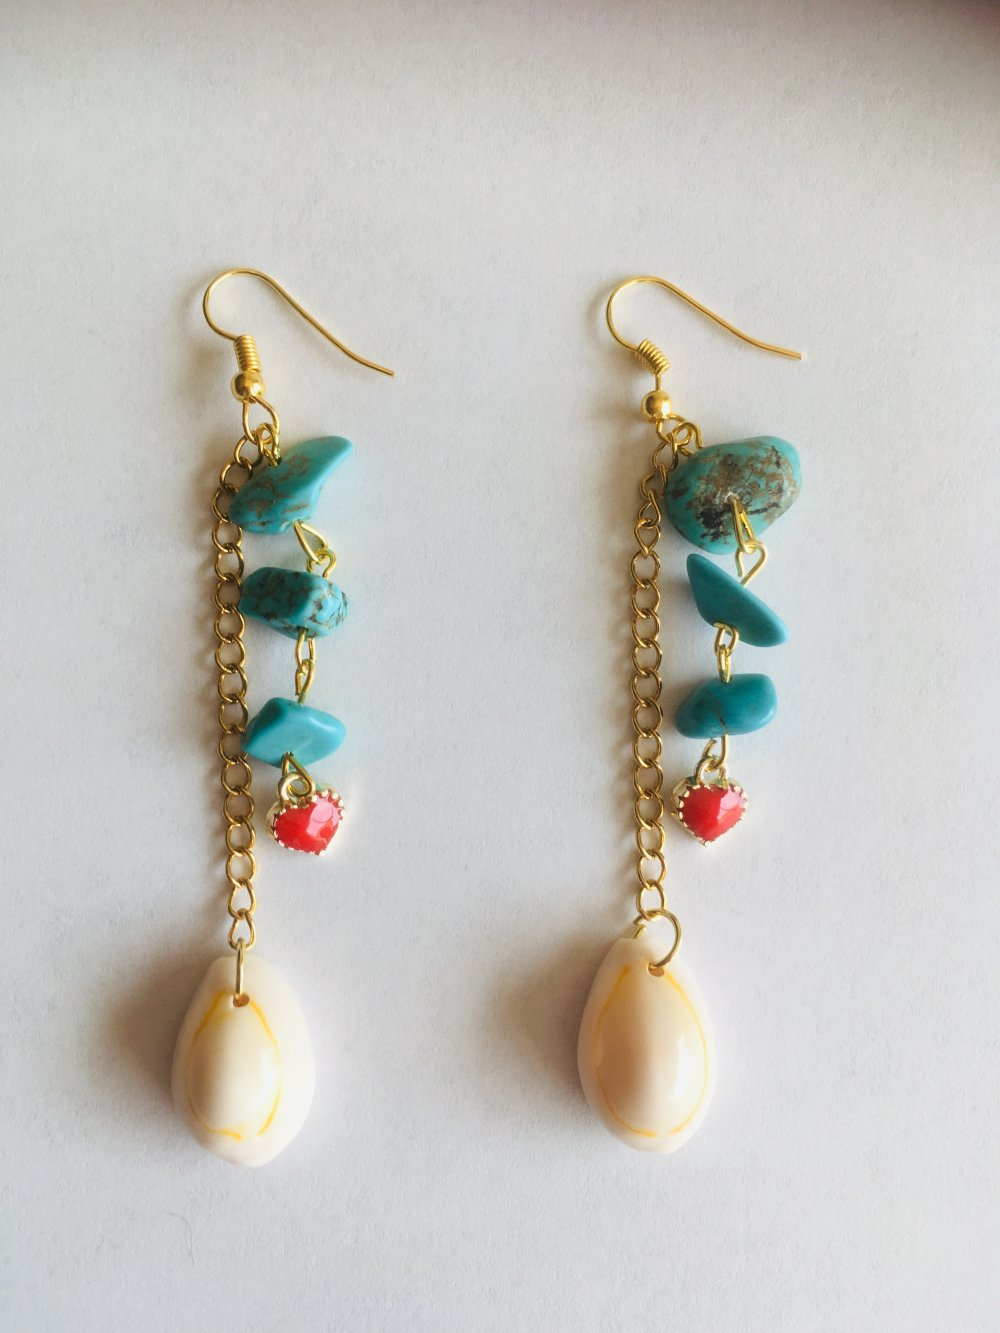 Boucles d oreille coquillage